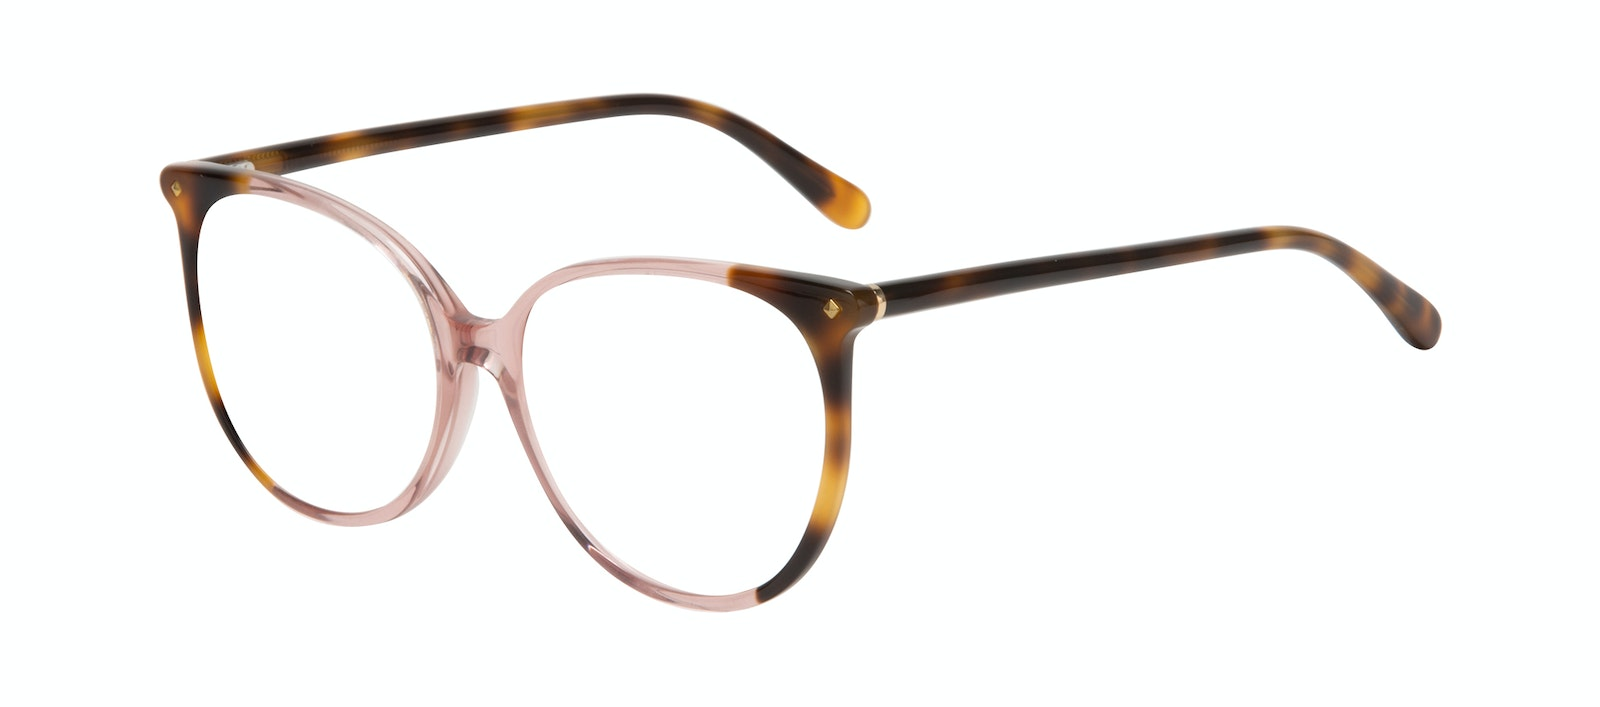 Affordable Fashion Glasses Round Eyeglasses Women Area Rose Tort Tilt